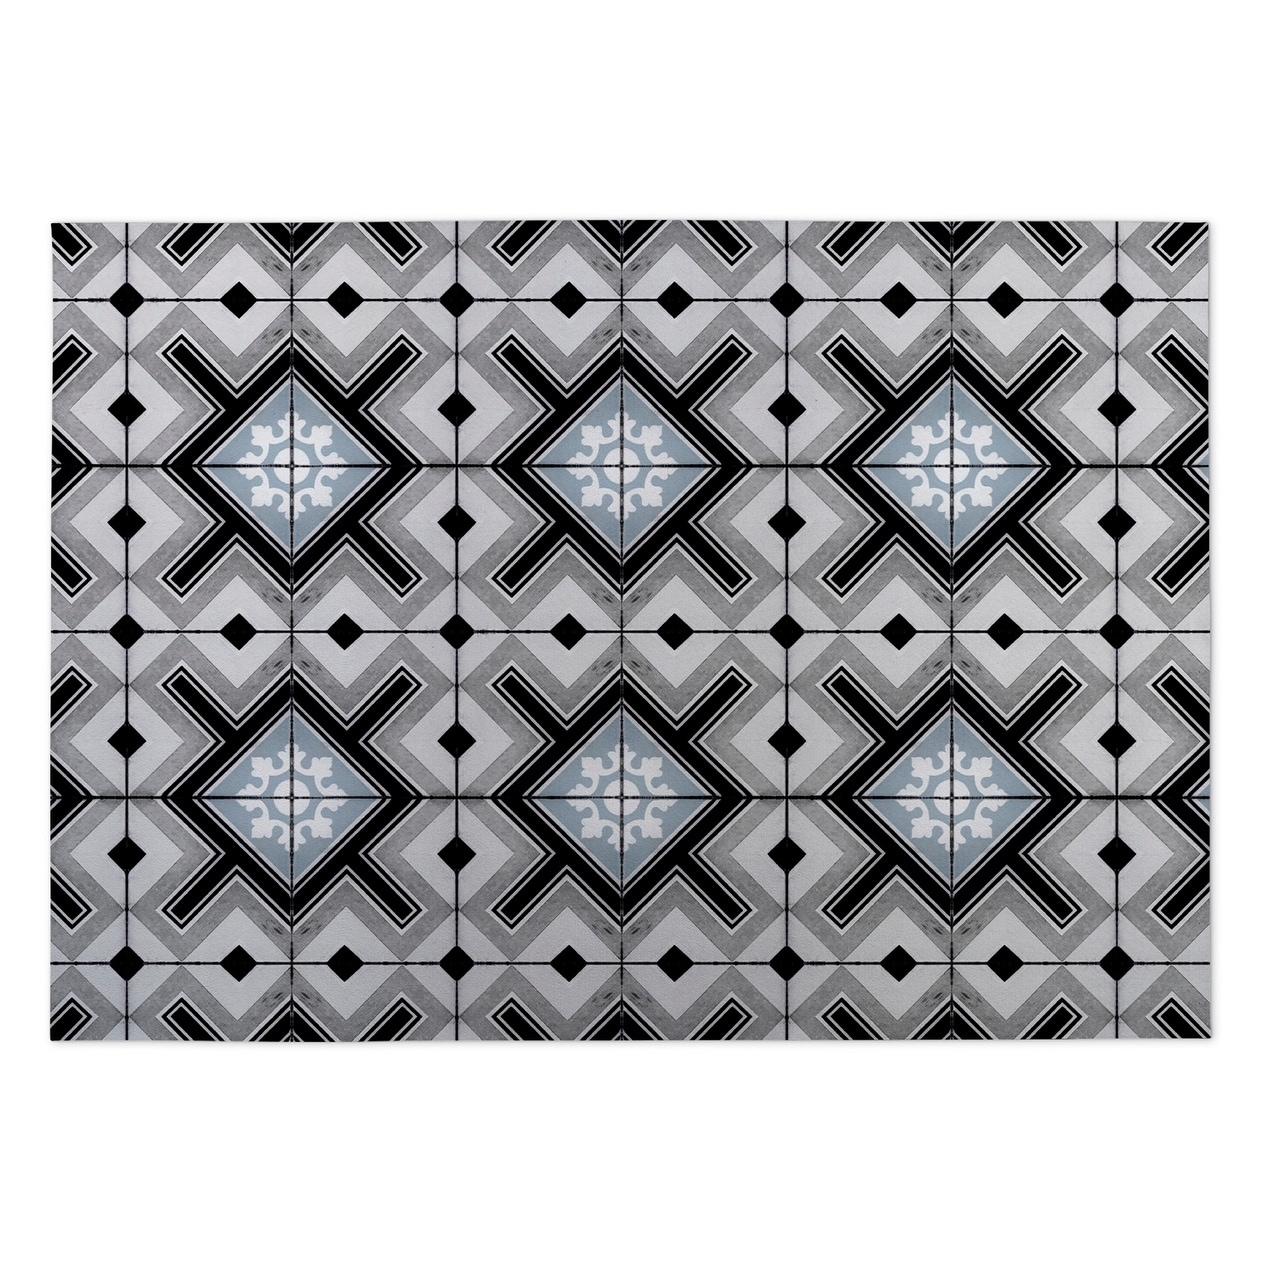 Kavka Designs Grey Tiles 2 x 3 Indoor/ Outdoor Floor Mat (Grey - N/A - Modern & Contemporary)